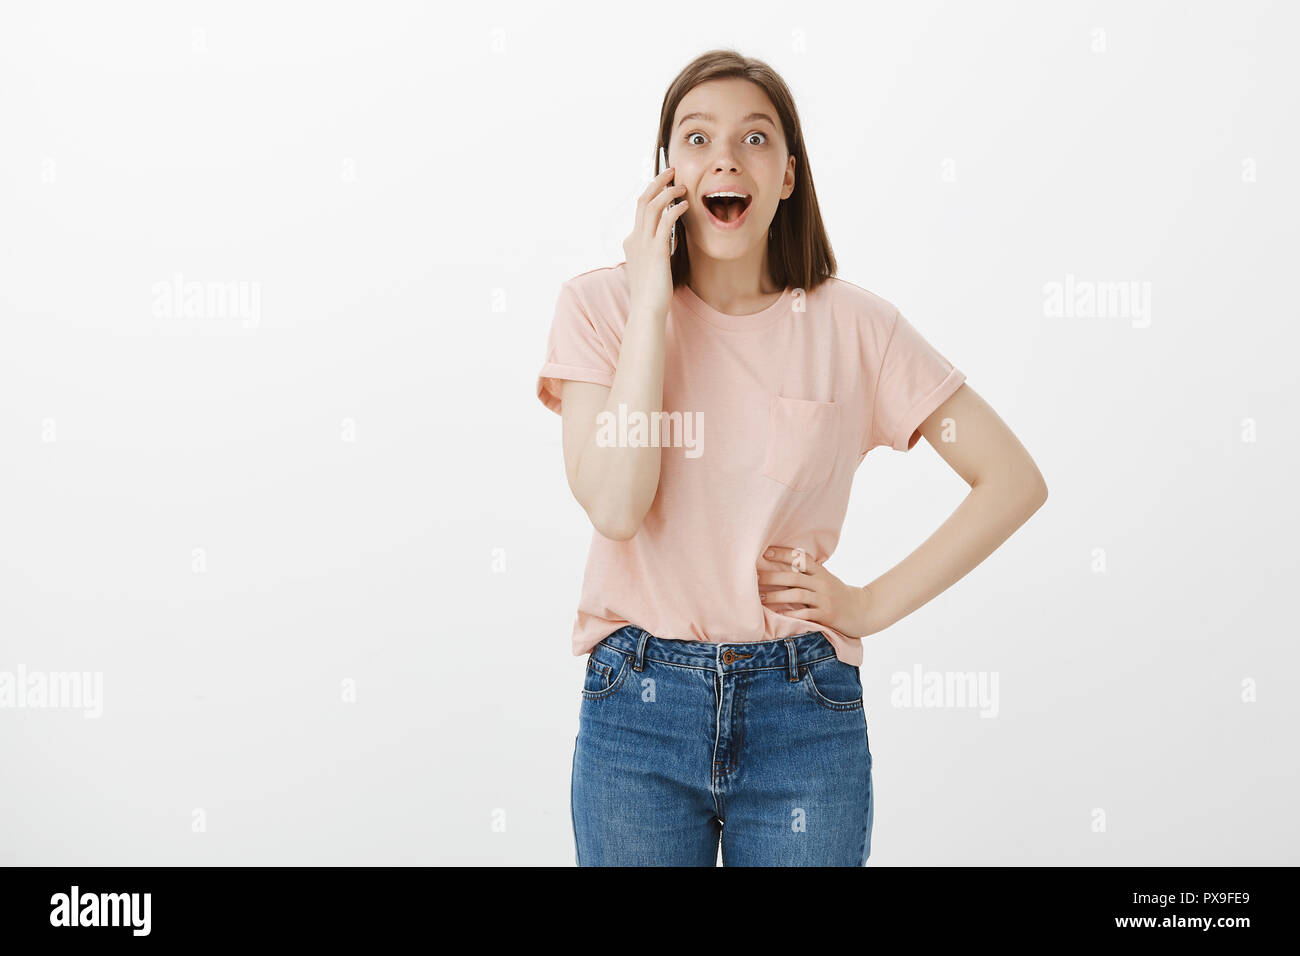 Phone call on girl Strip search